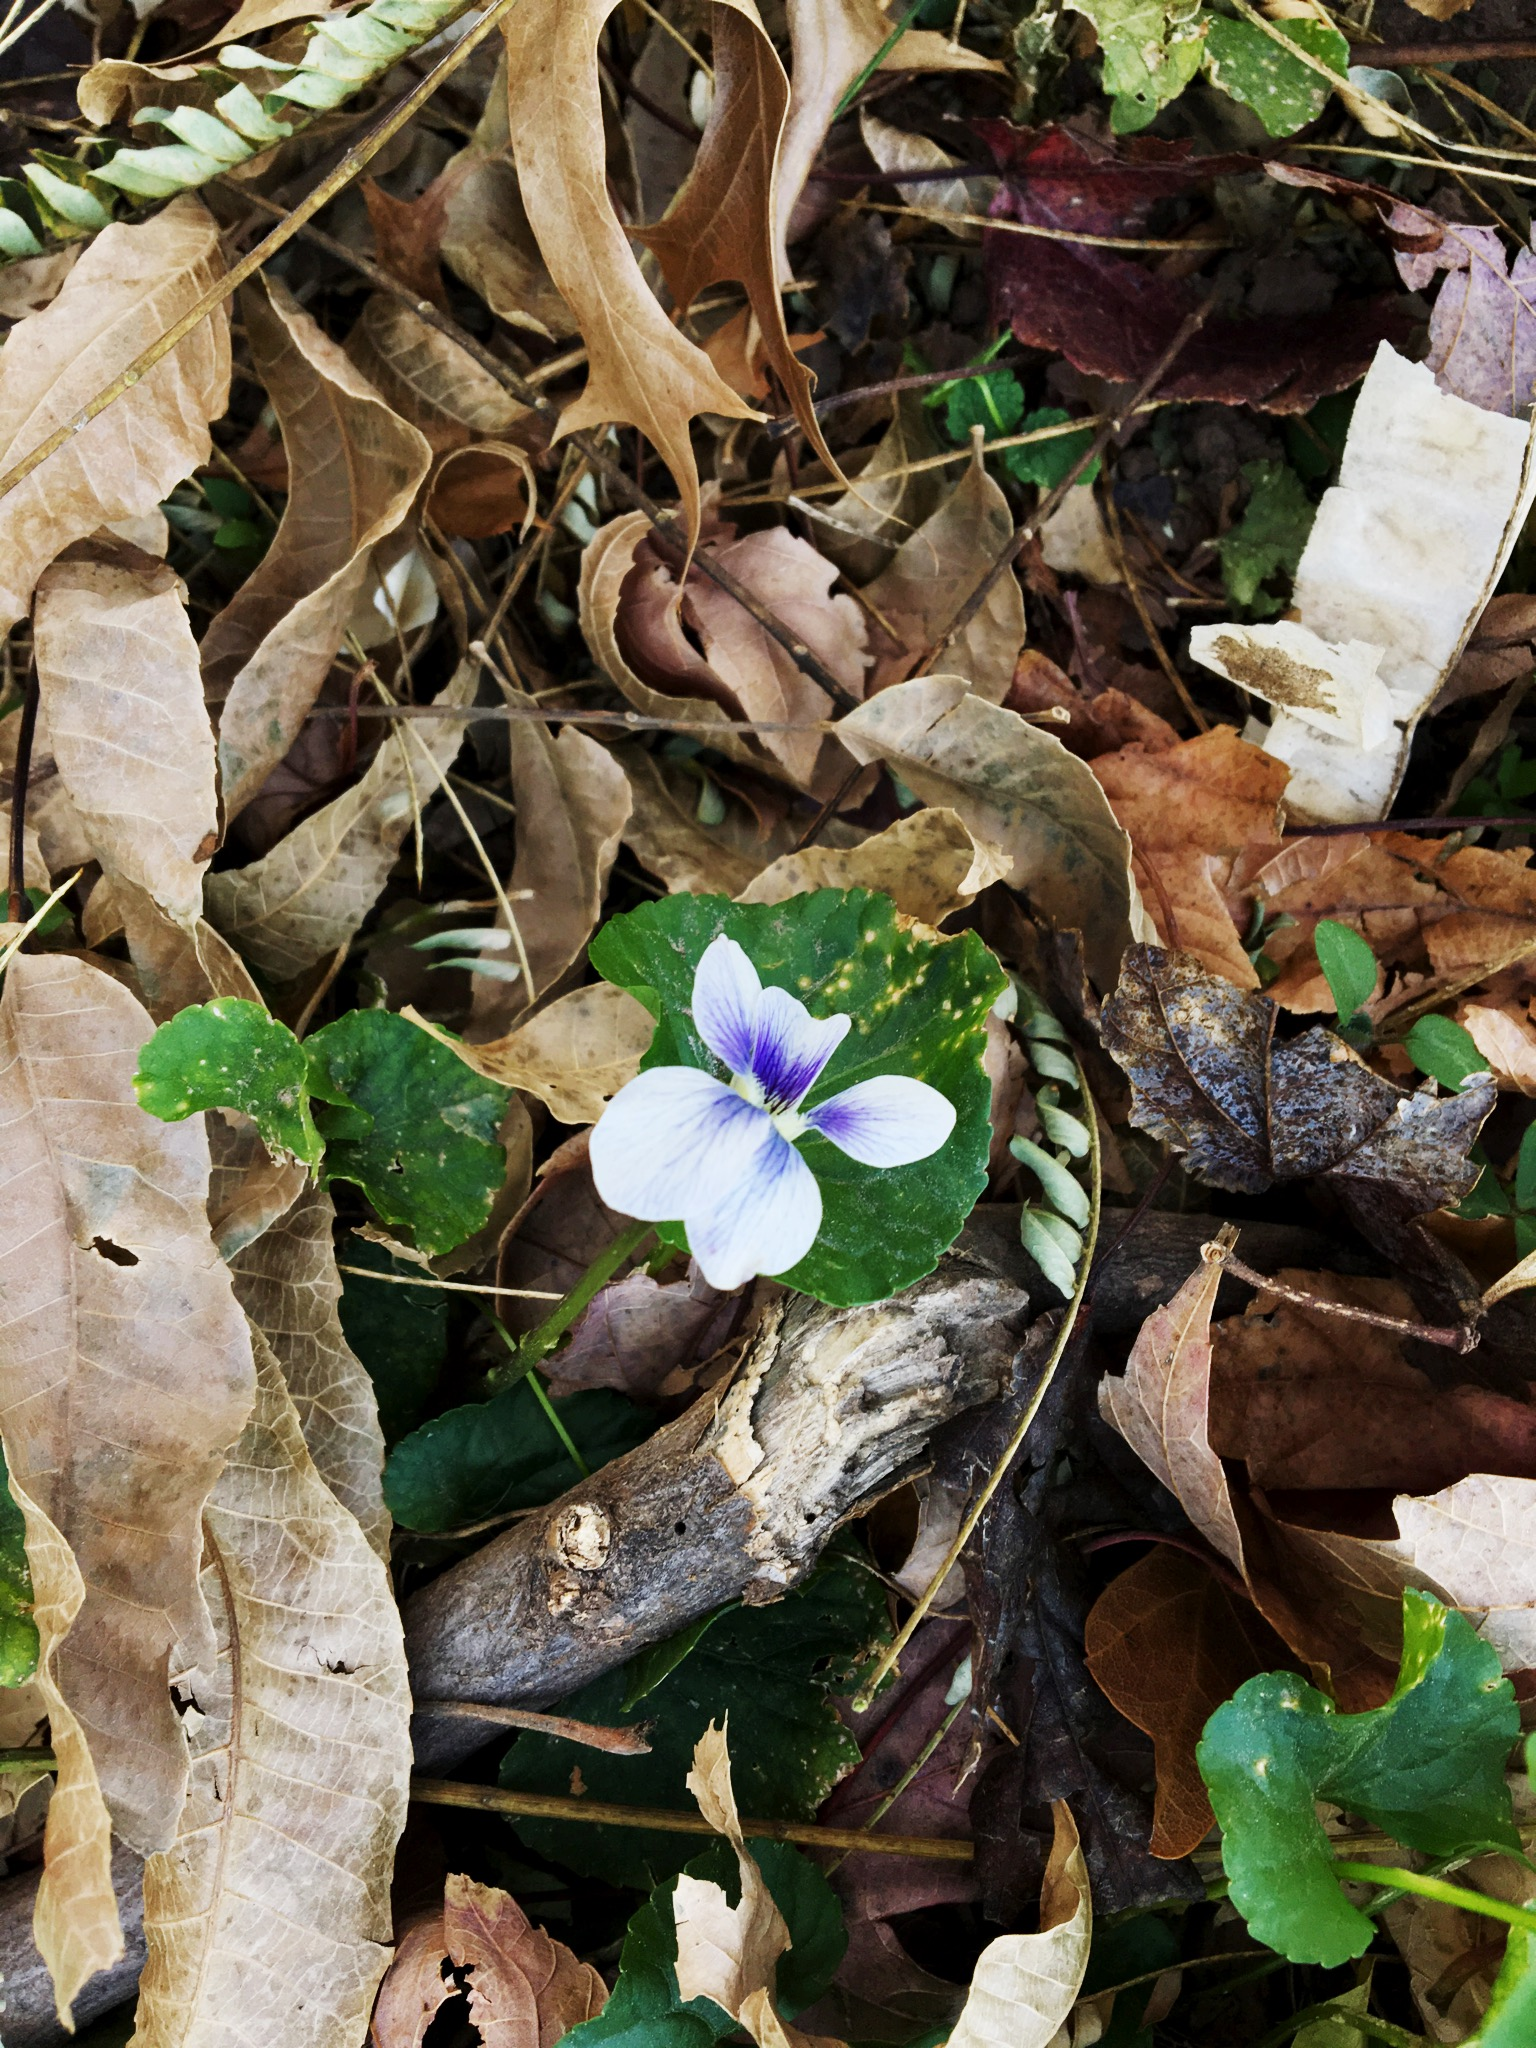 Daly found a wild violet in her yard. Some (all) people think these are weeds, but Daly would like her whole yard to be wild violets.